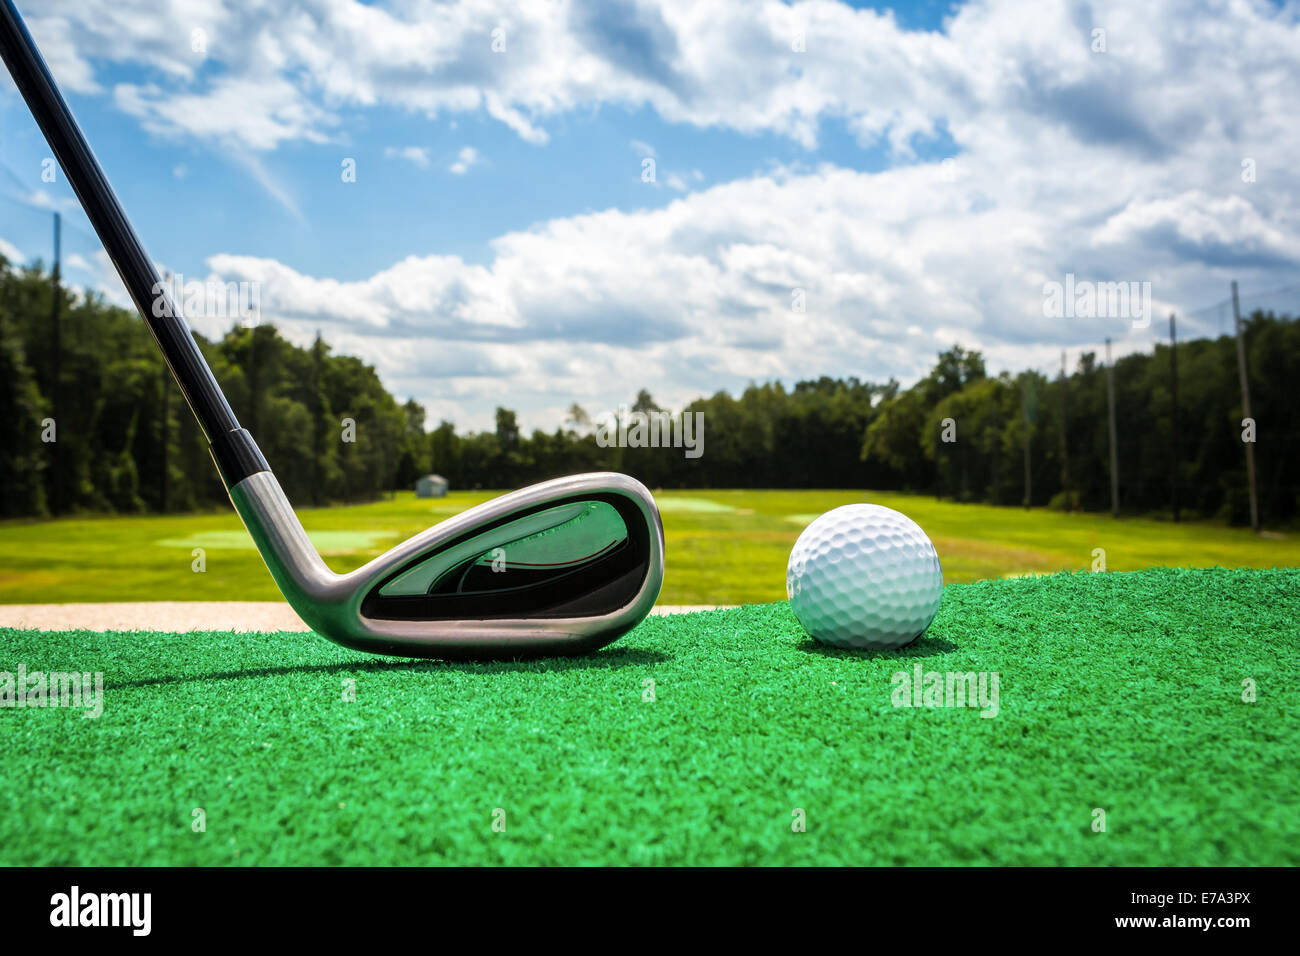 Close-up of a golf ball and a golf iron on a driving range - Stock Image